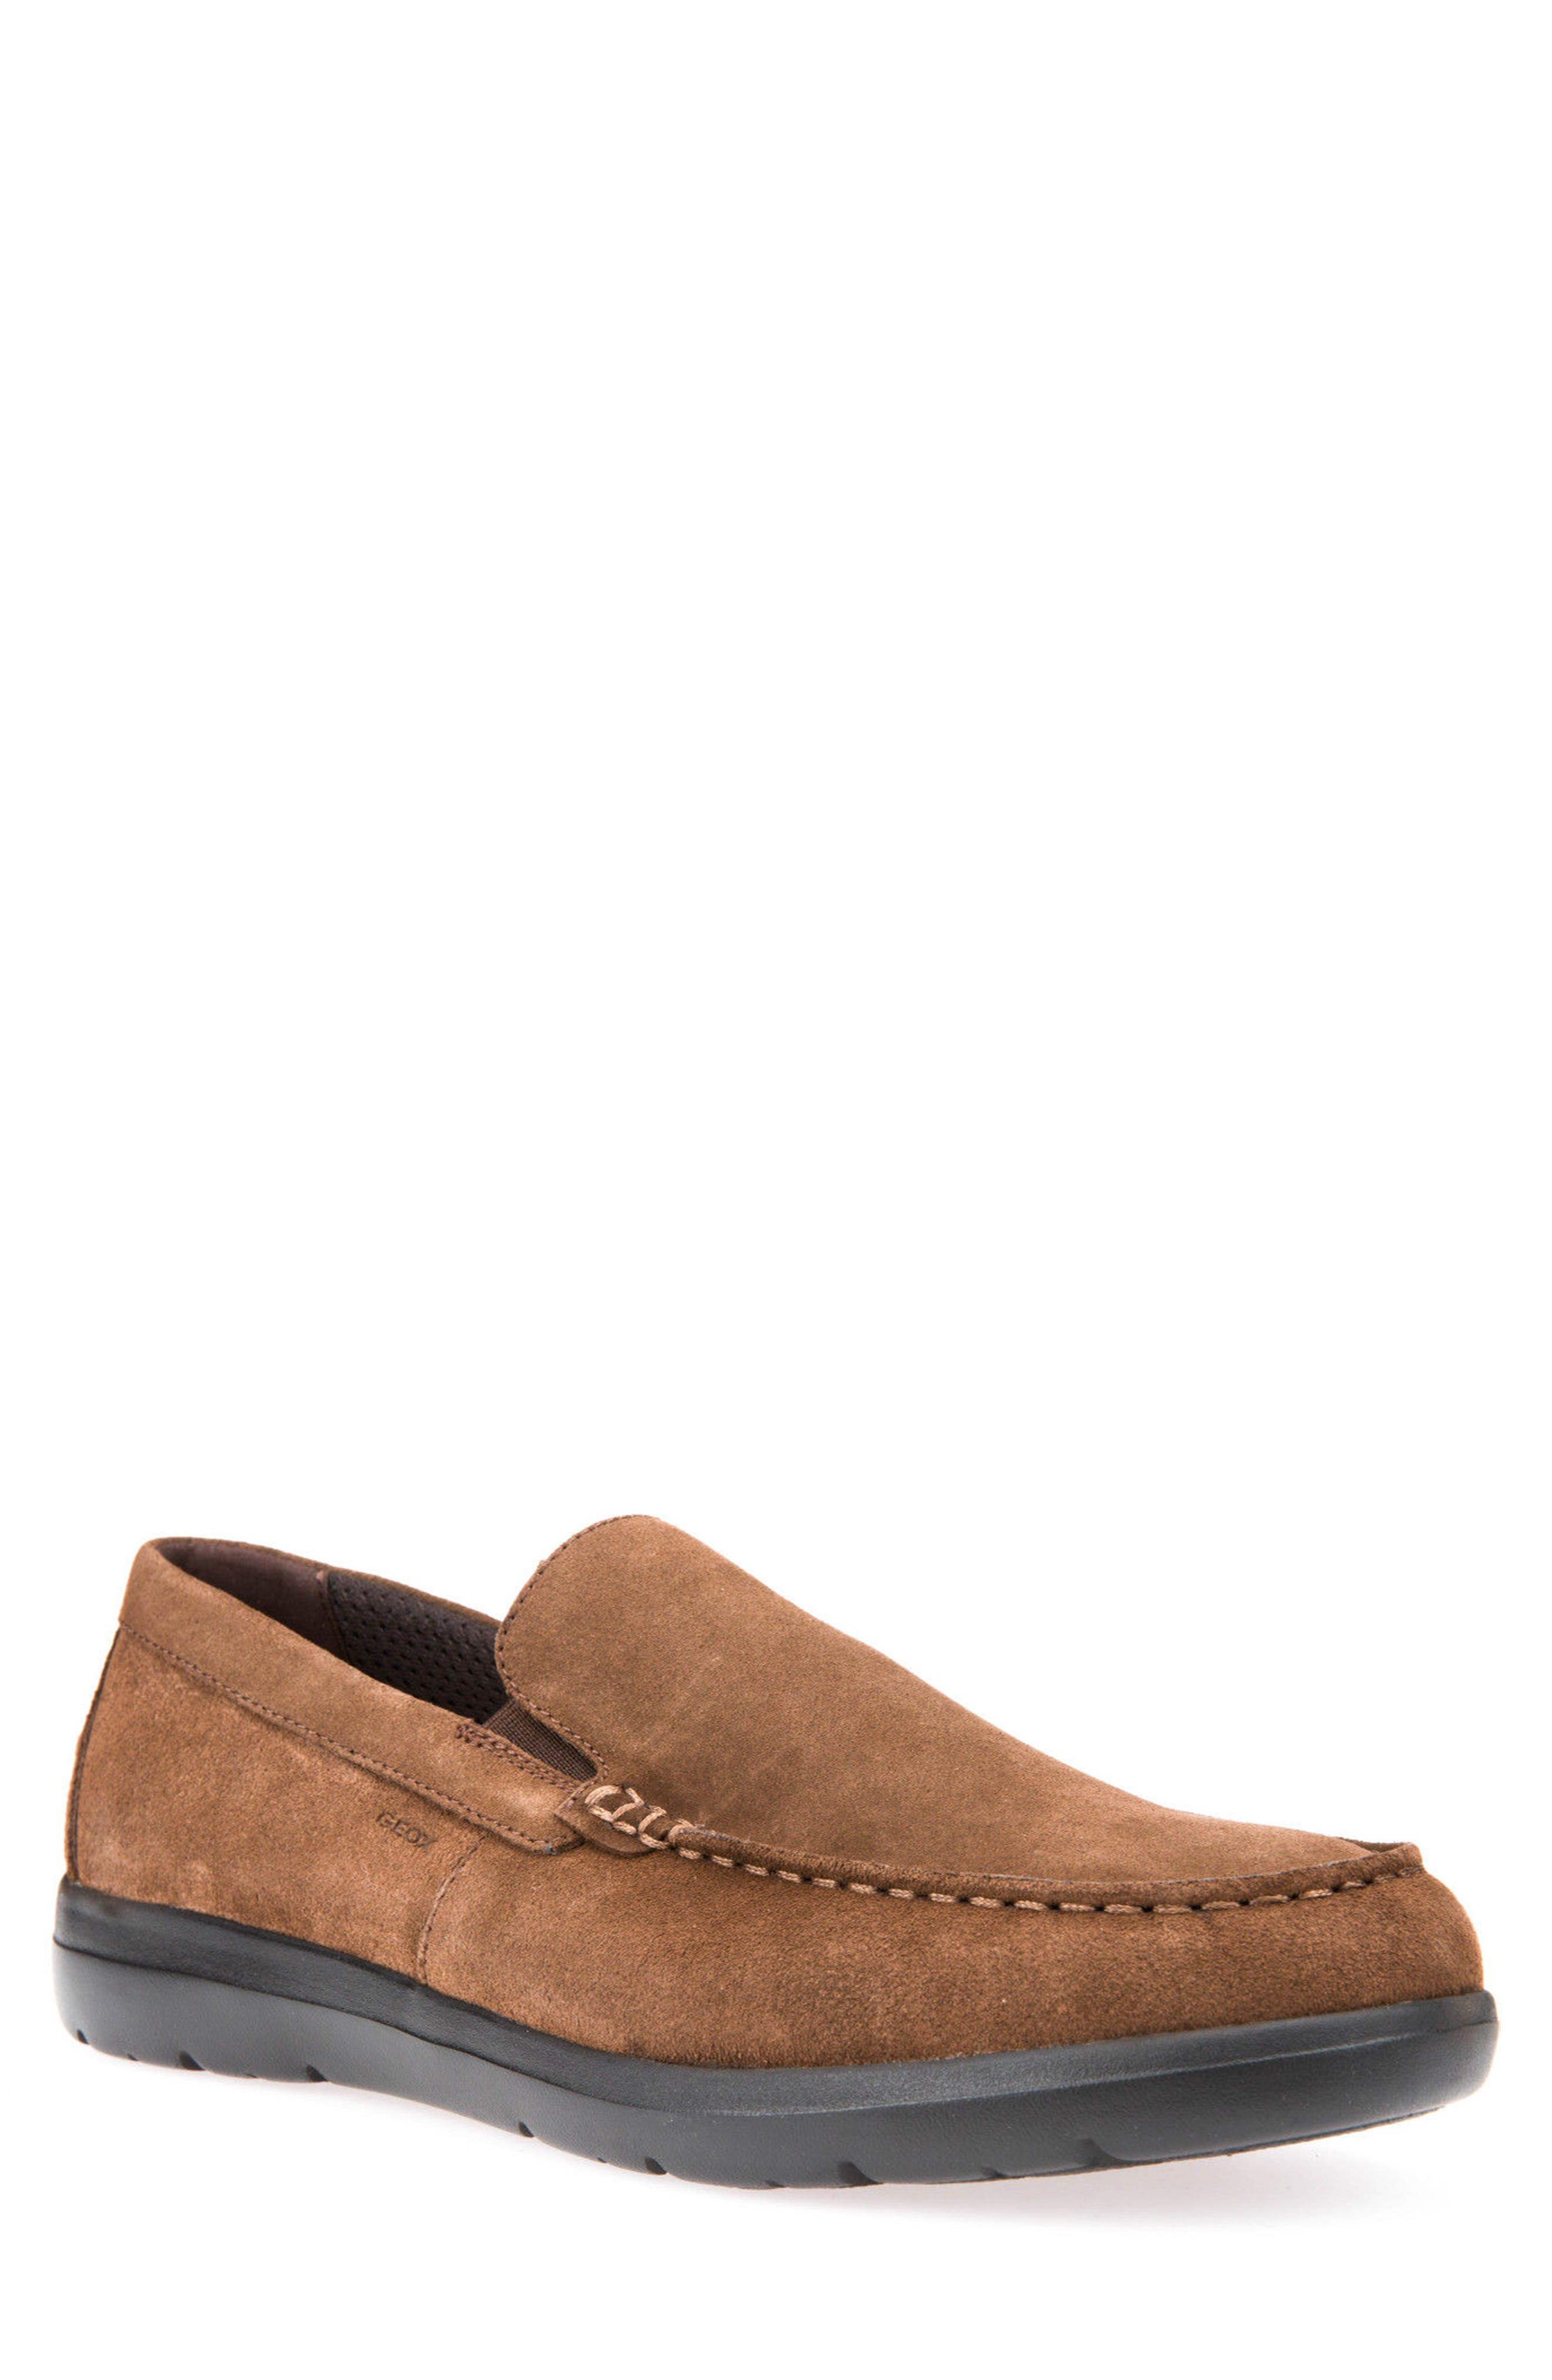 Geox Leitan 2 Loafer, Brown